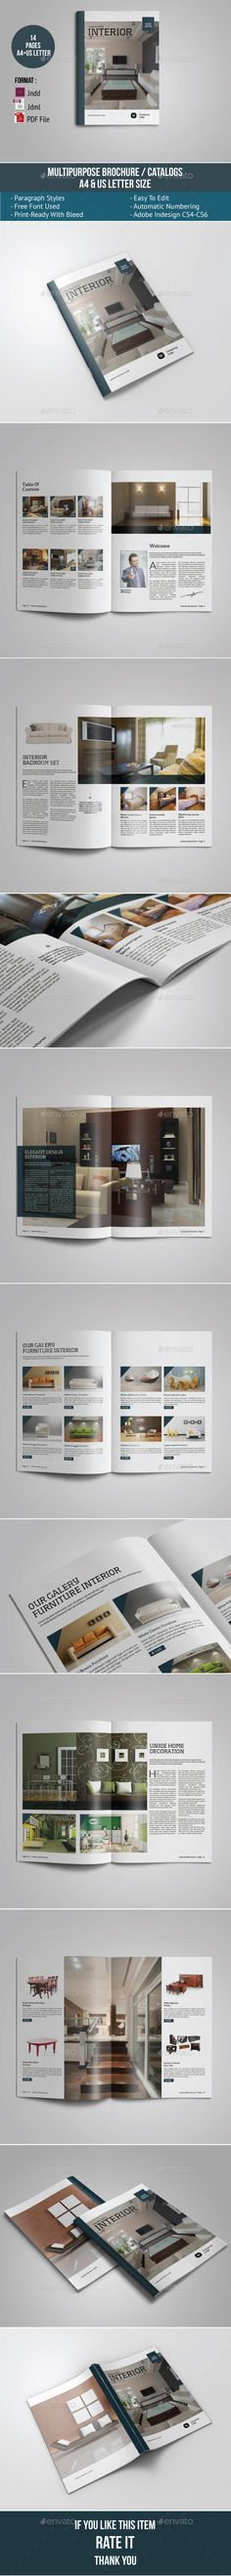 Catalogs \/ Brochure Brochures, Catalog and Brochure template - interior design brochure template